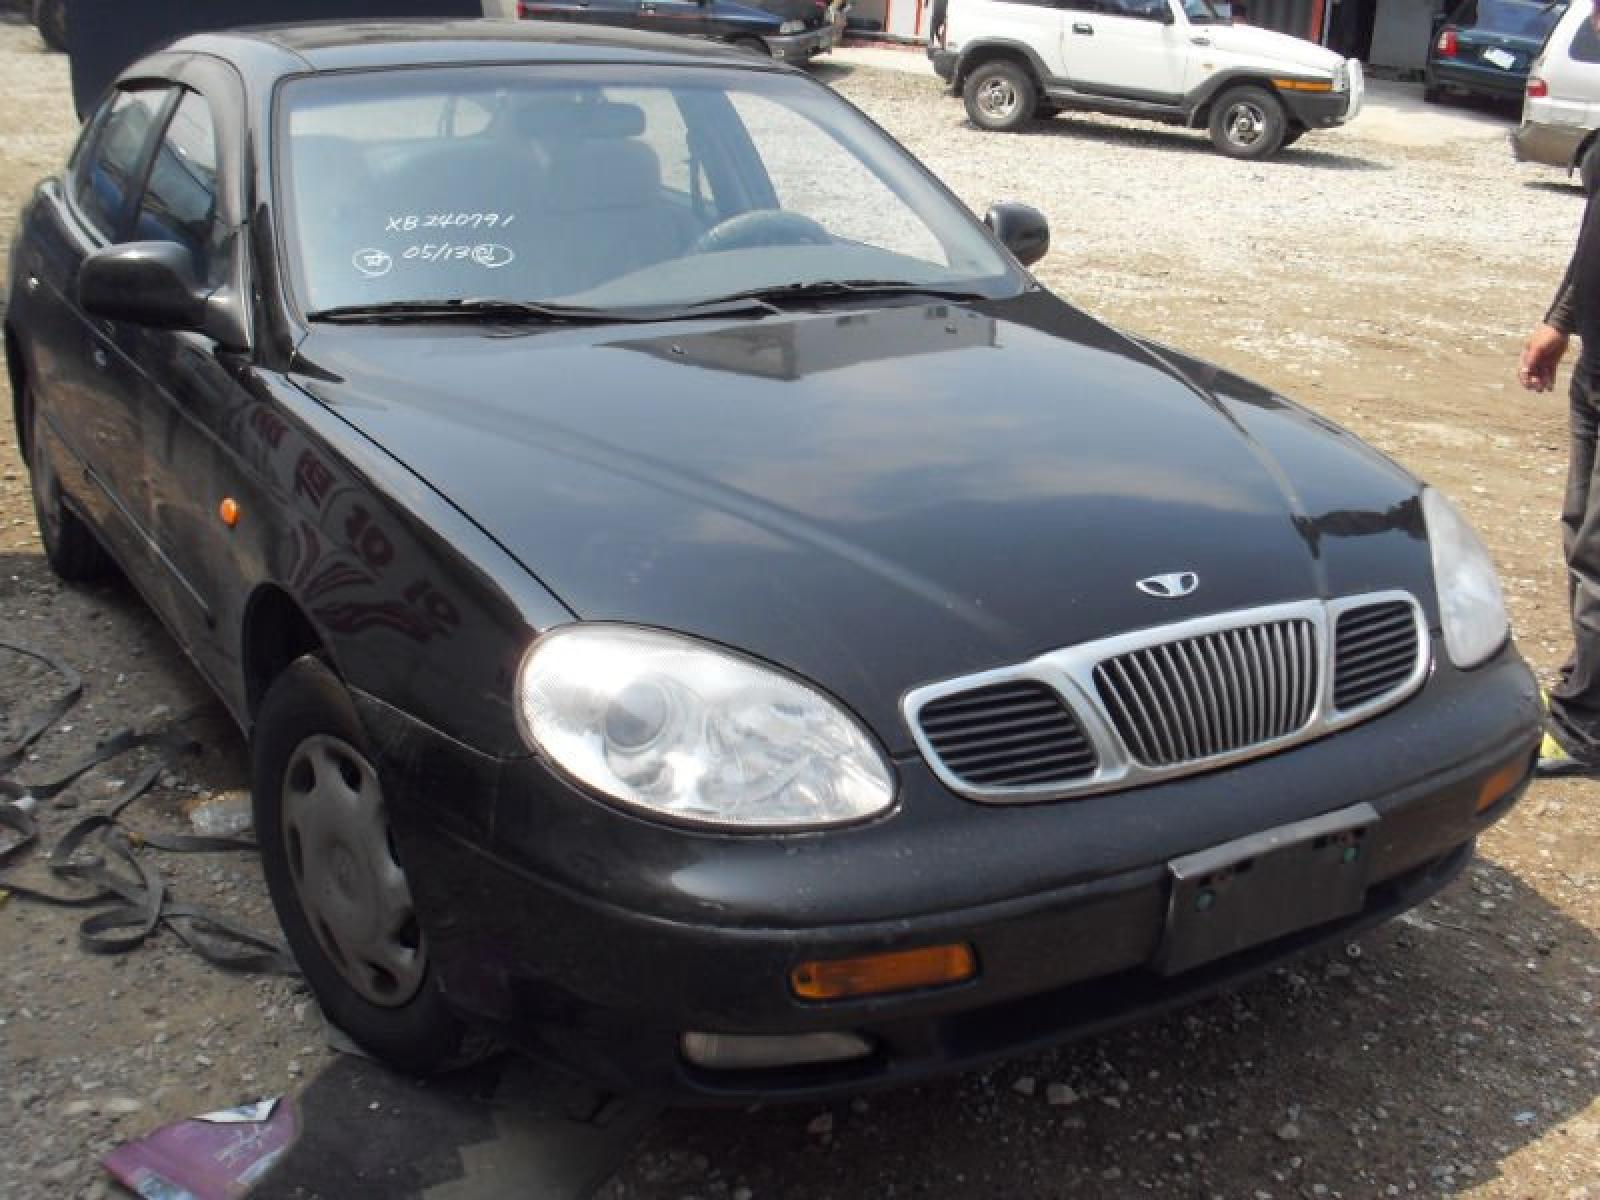 1999 Daewoo Leganza - Information and photos - ZombieDrive